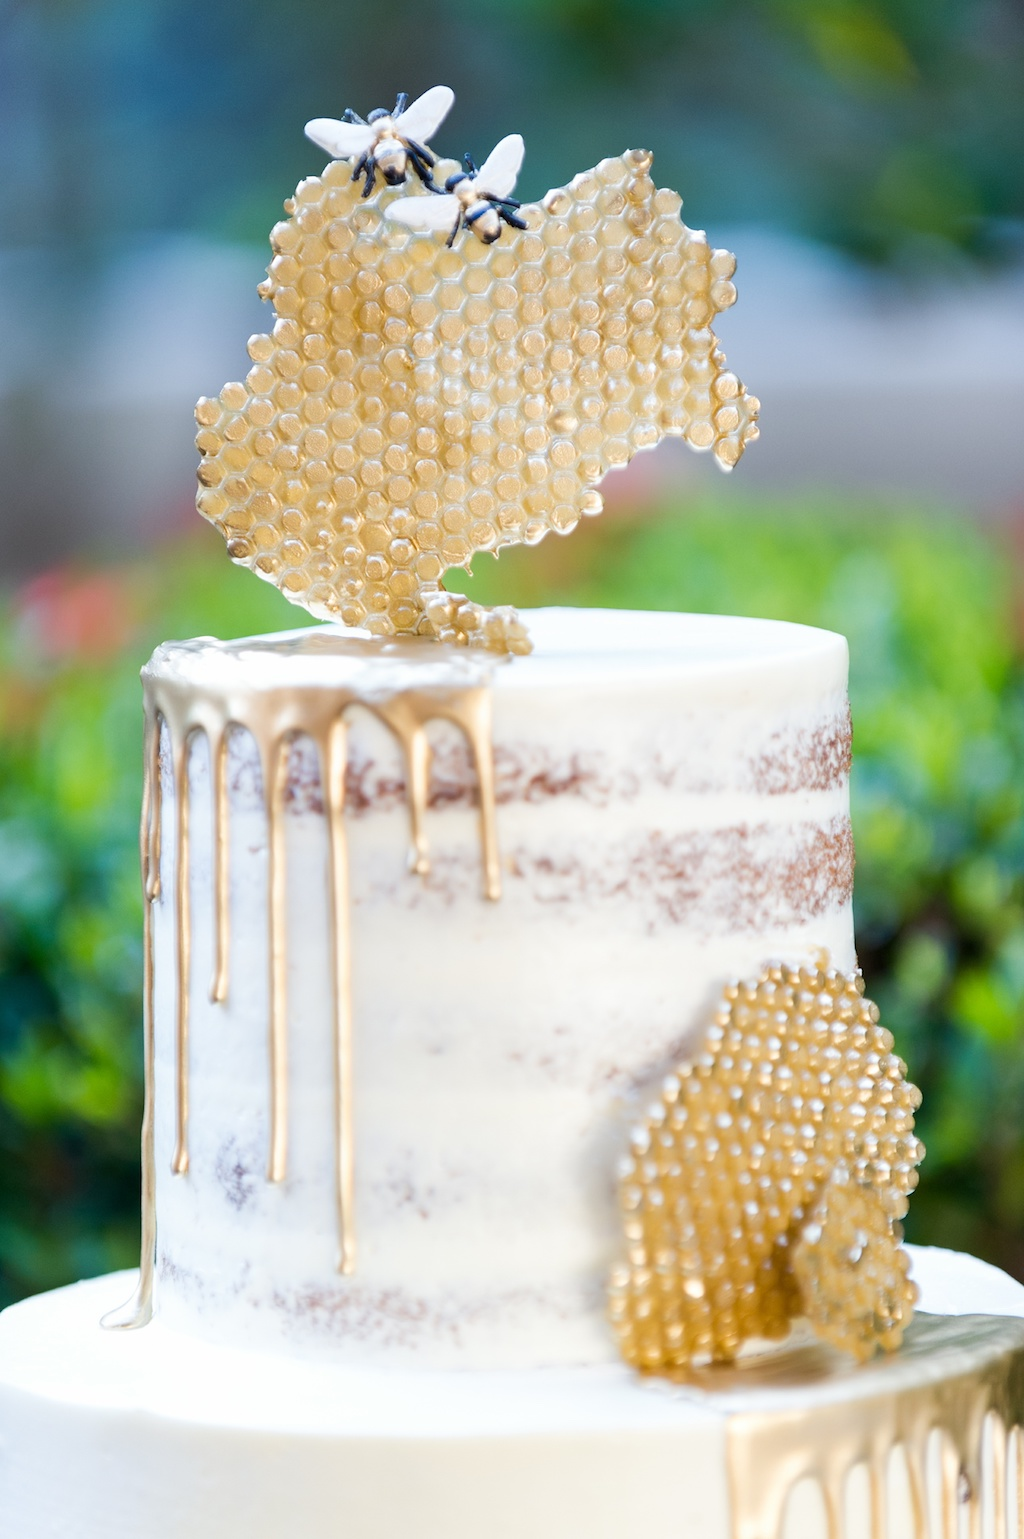 Bumble Bee Inspired, Semi Naked Wedding Cake, White Frosting, Gold Drip and Honeycomb, Bumblebees   Historic Hyde Park Wedding Venue Epicurean Hotel in South Tampa   Tampa Bay Wedding Photographer Andi Diamond Photography   Cake Decorator The Artistic Whisk